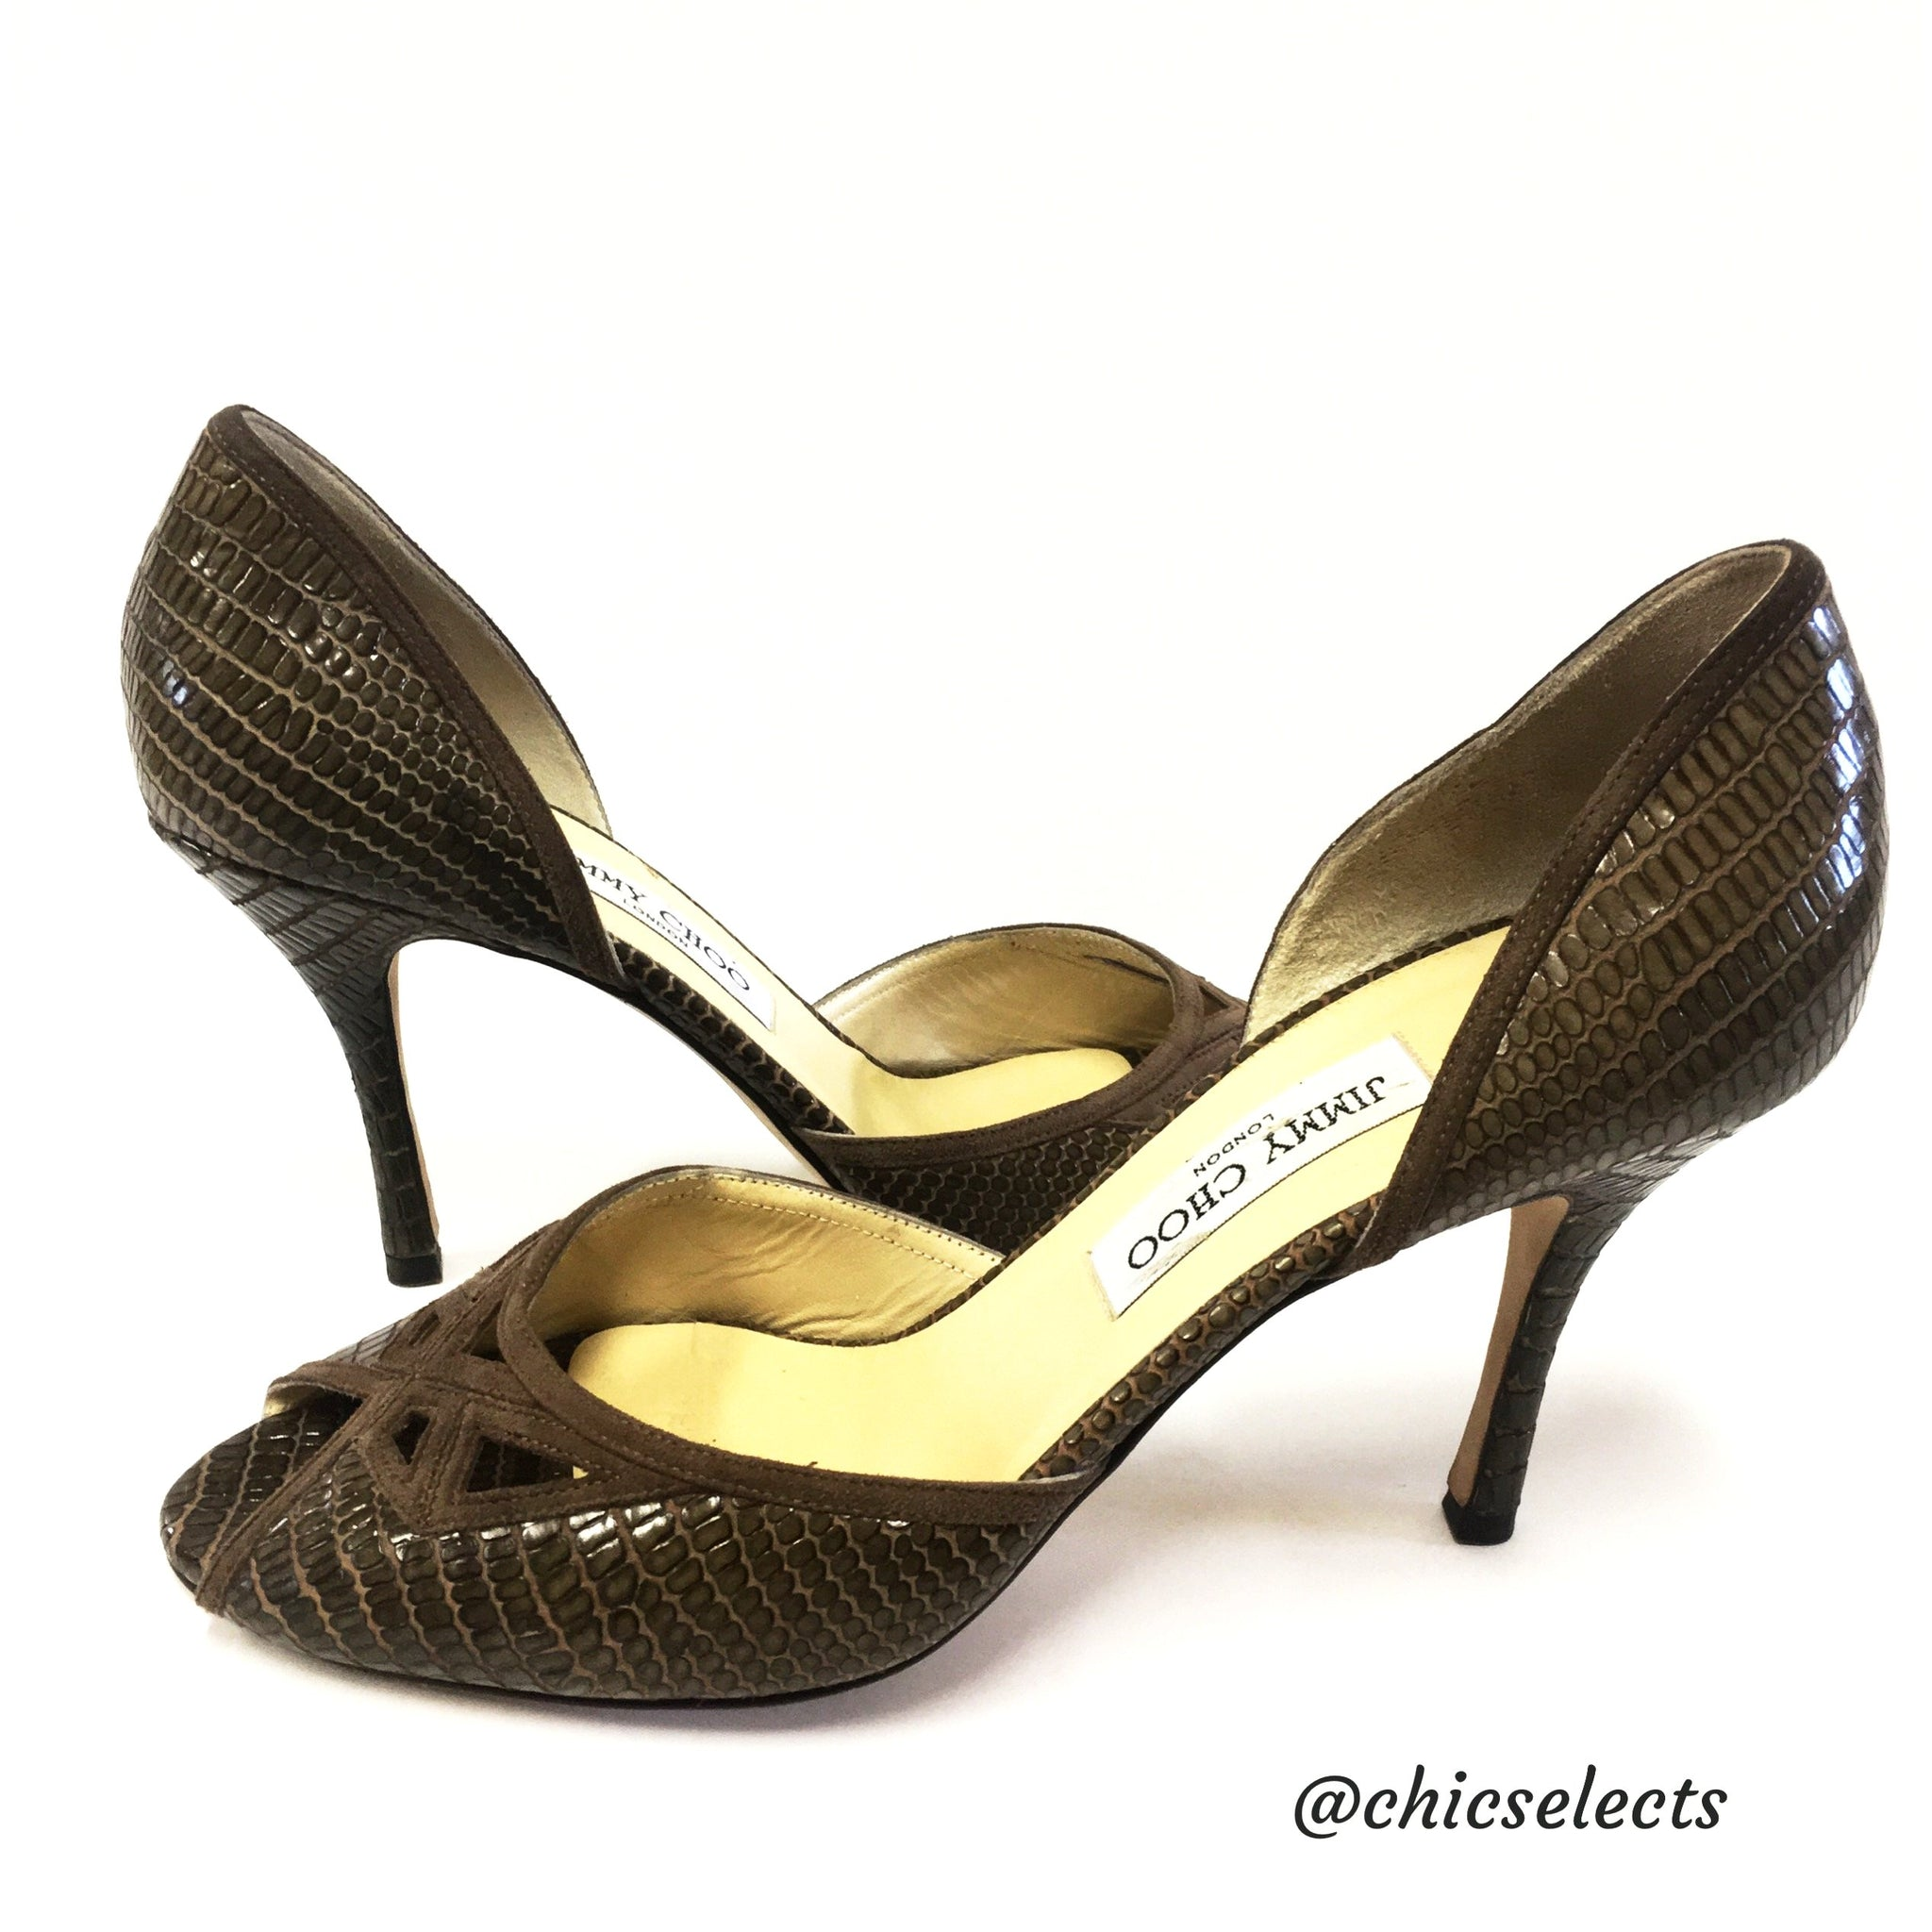 Fast Delivery Online Buy Cheap Very Cheap Jimmy Choo Embossed D'Orsay Pumps Pay With Paypal Sale Online Brand New Unisex Cheap Online Free Shipping How Much hk5mgqsFy